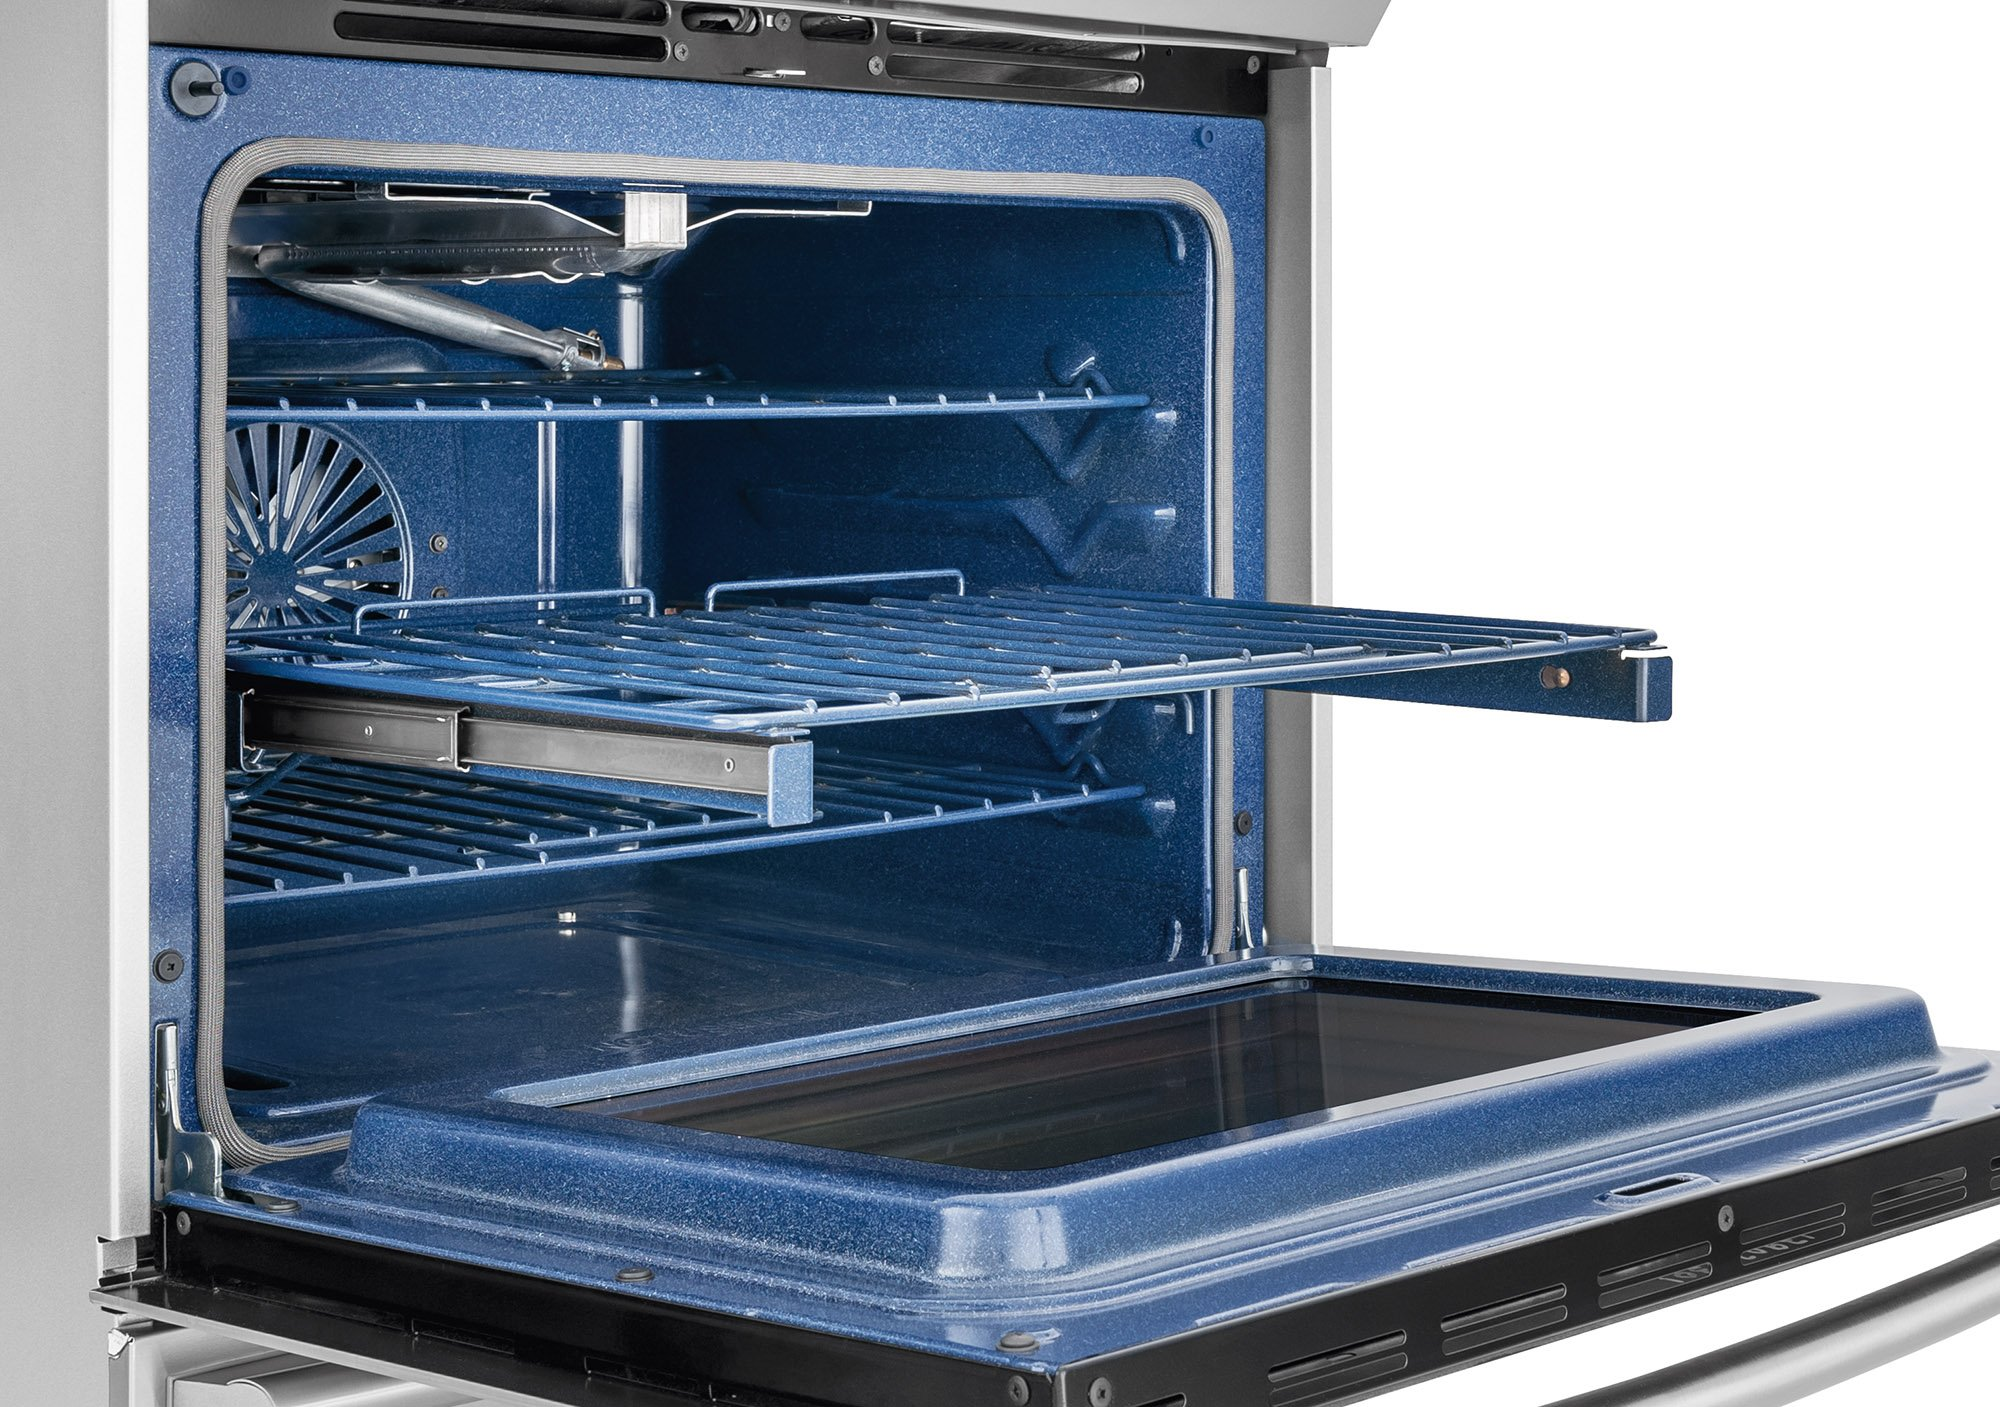 Electrolux EW30GS80RS 30'' Star K ADA Compliant Gas Slide-In Range Oven with 5 Sealed Burners 4.5 cu. ft. Oven Capacity Continuous Grates and Luxury-Glide Oven Rack in Stainless by Electrolux (Image #3)